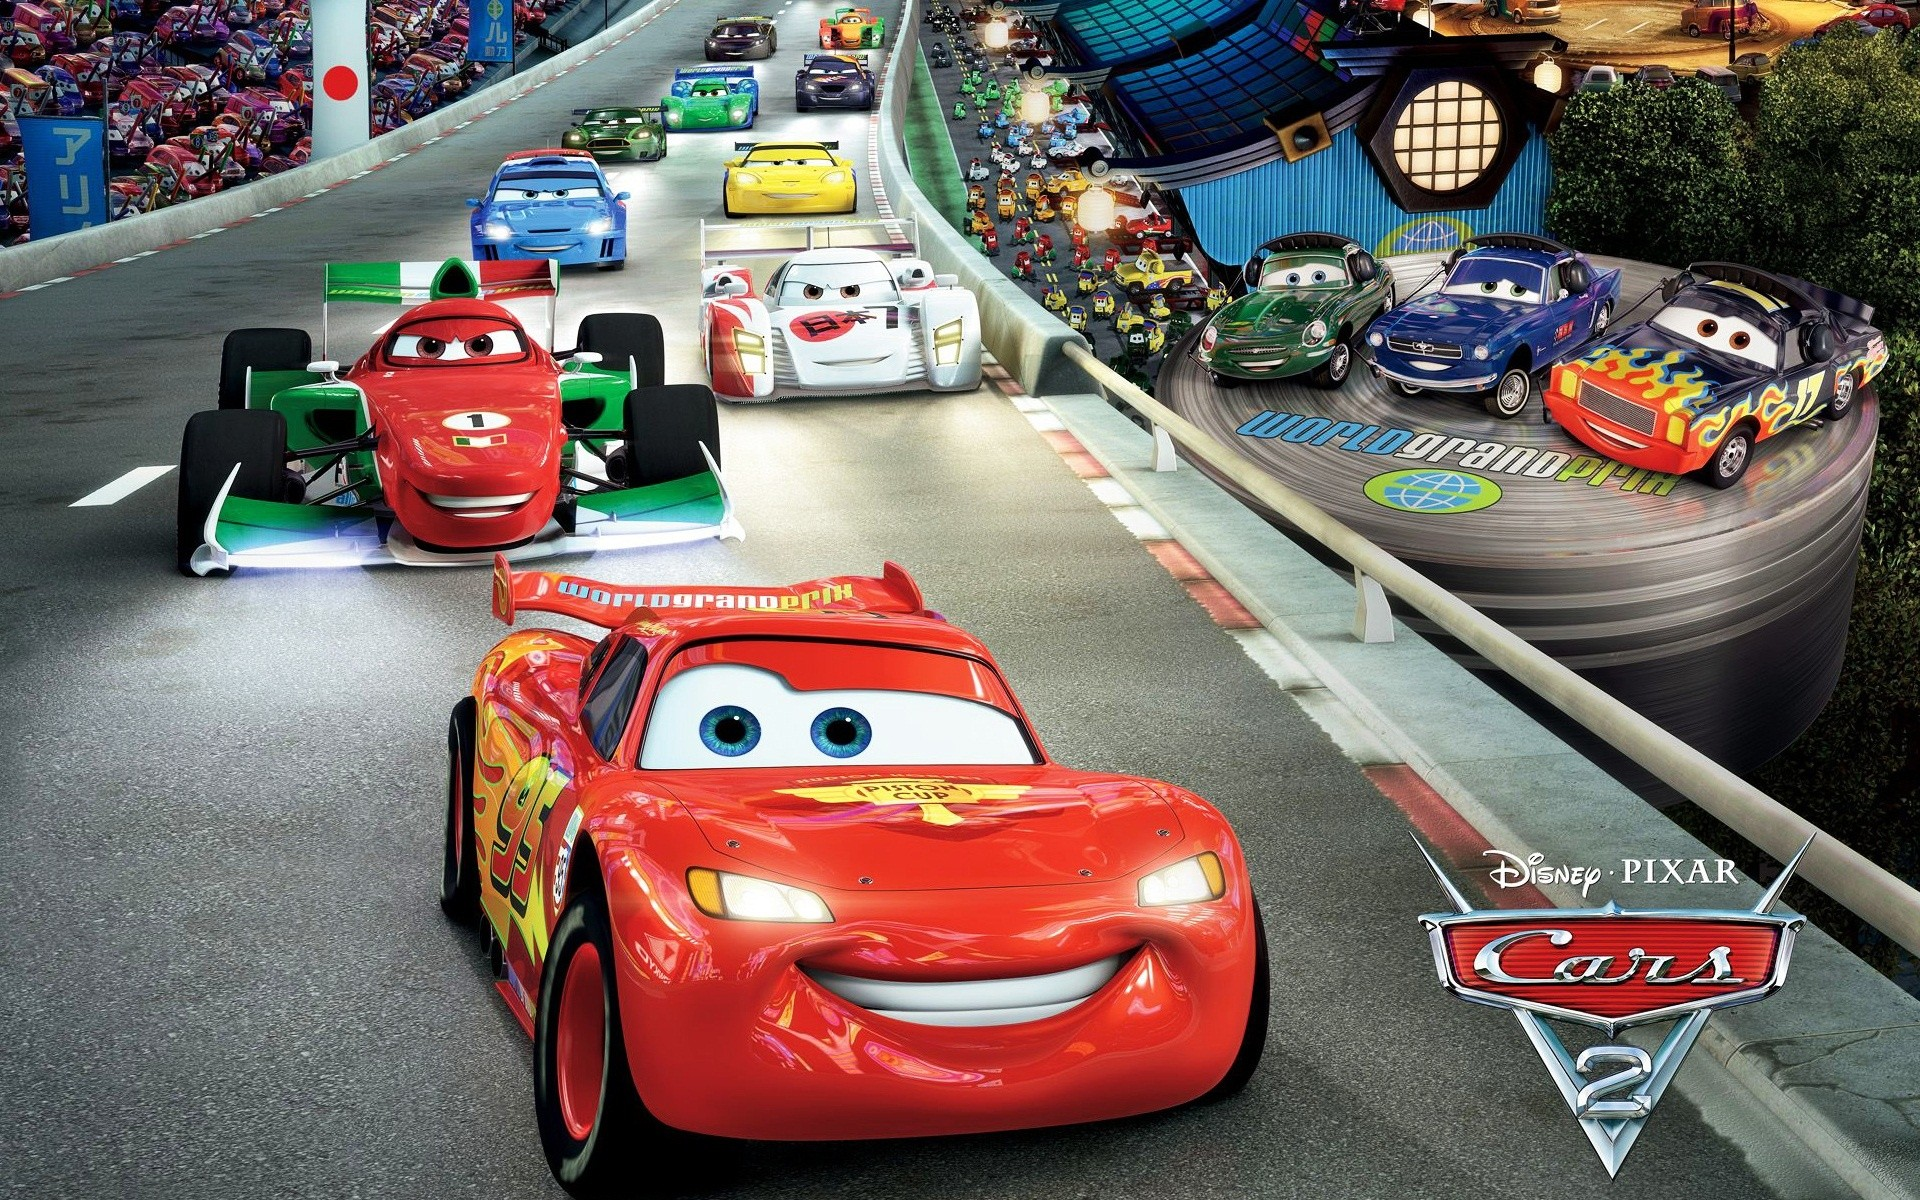 Cars 2: The Video Game - Screenshots - 127 of 49 - GamersHell.com